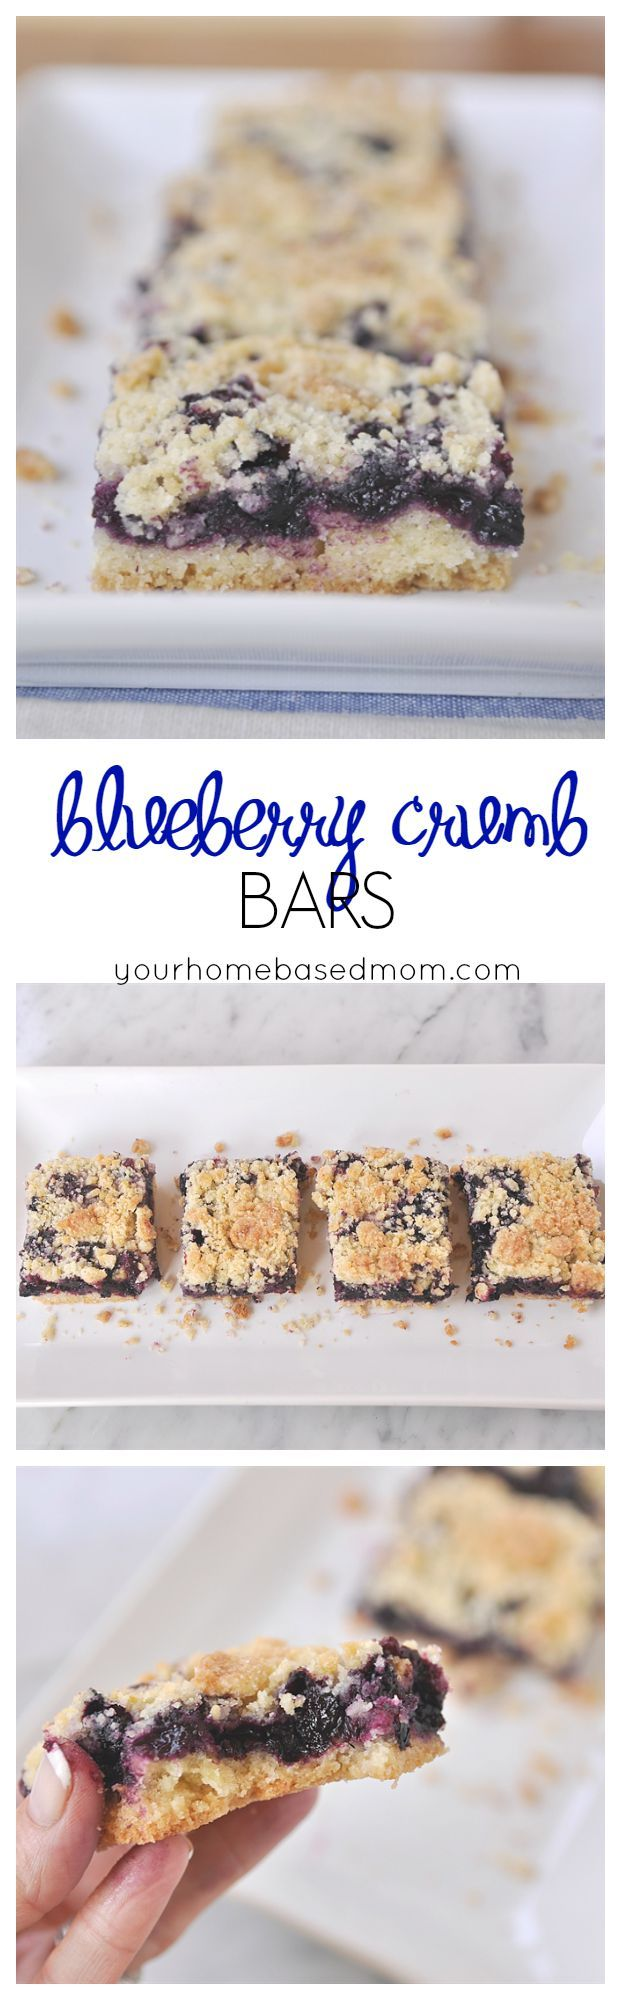 Blueberry Crumb Bars are a delicious layer of blueberries sandwiched between sugar and butter!